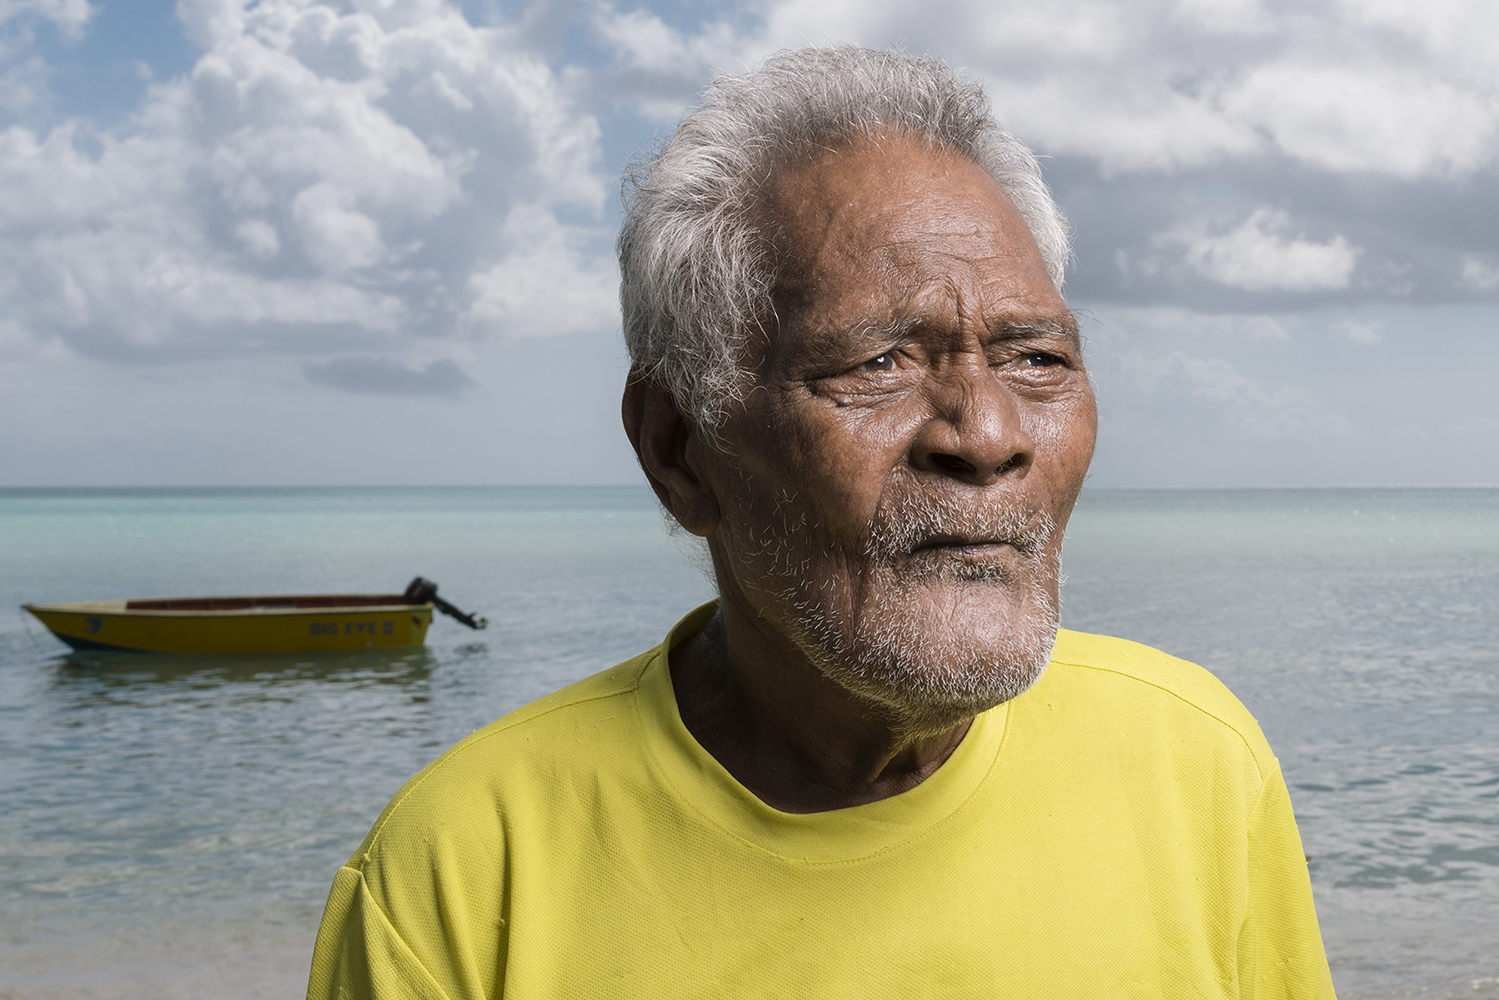 Betio, Tarawa Island, Kiribati, Pacific Ocean Toukin Ataua, 68 years, is a former fisherman living in the tuna fishing community Te O Ni Beeki, on Tarawa Island, Kiribati. He has been fishing for over 50 years. He says that before they used to get a lot of fish but they don't get many anymore. To Kiribati people, fish is life. They eat fish every day. If there's no tuna, they can't eat. The big ships take all the fish but none of the money comes back to the Kiribati people.